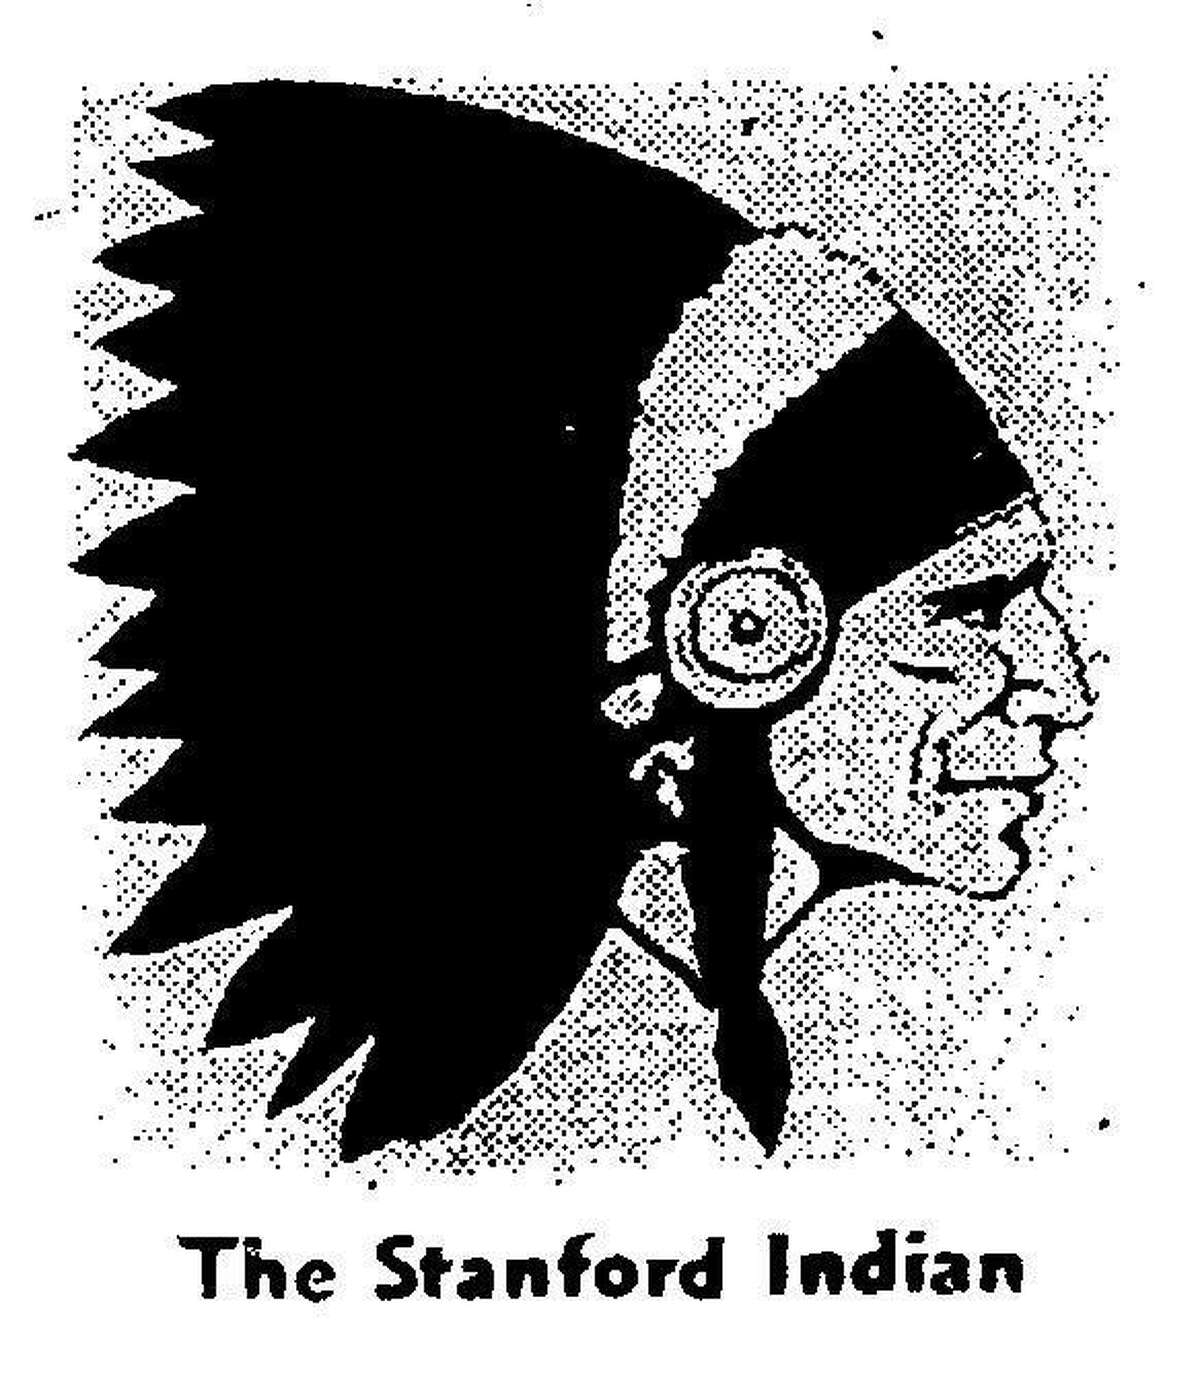 The Stanford Indian logo as it looked in 1972.